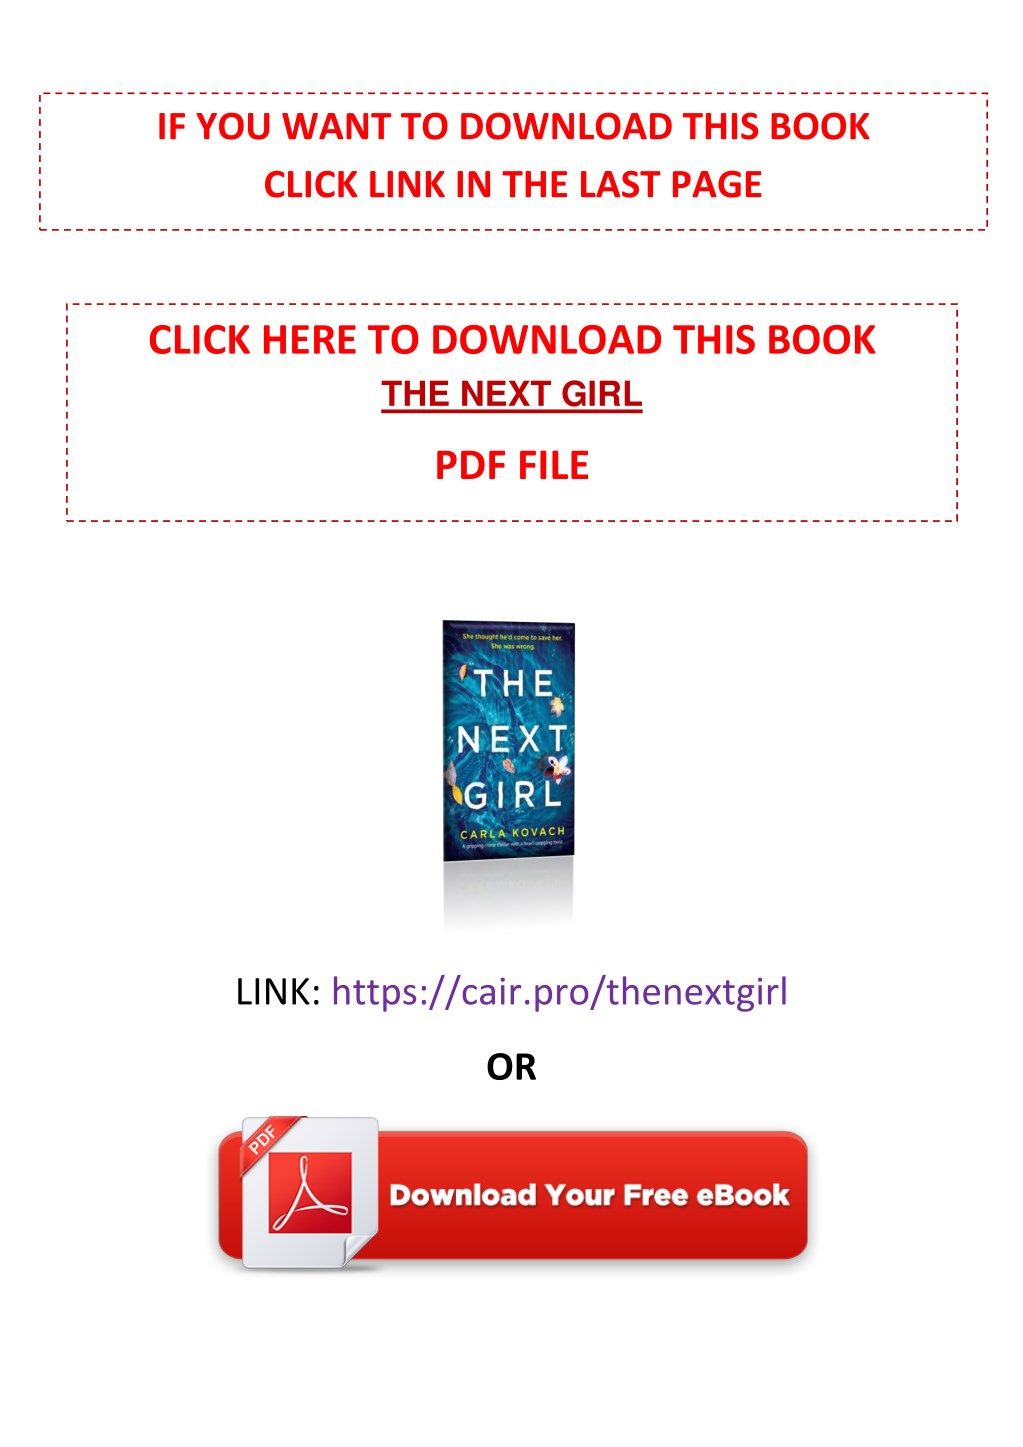 PPT - [PDF] Free Download The Next Girl By Carla Kovach